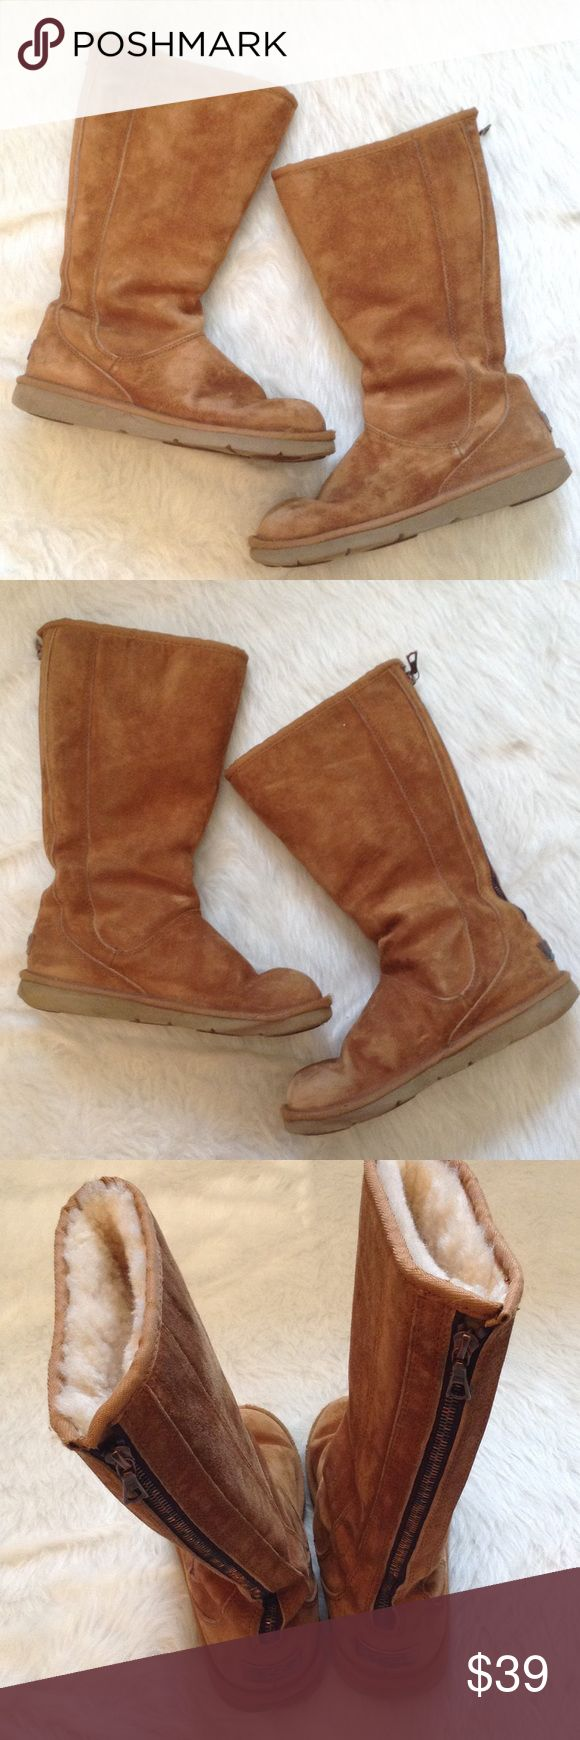 Ugg Australia women's boots size 8 brown Ugg authentic women's boots size 8. The boots are brown and zip up the back. The boots are in good used condition with some wear. See pictures for wear. UGG Shoes Winter & Rain Boots